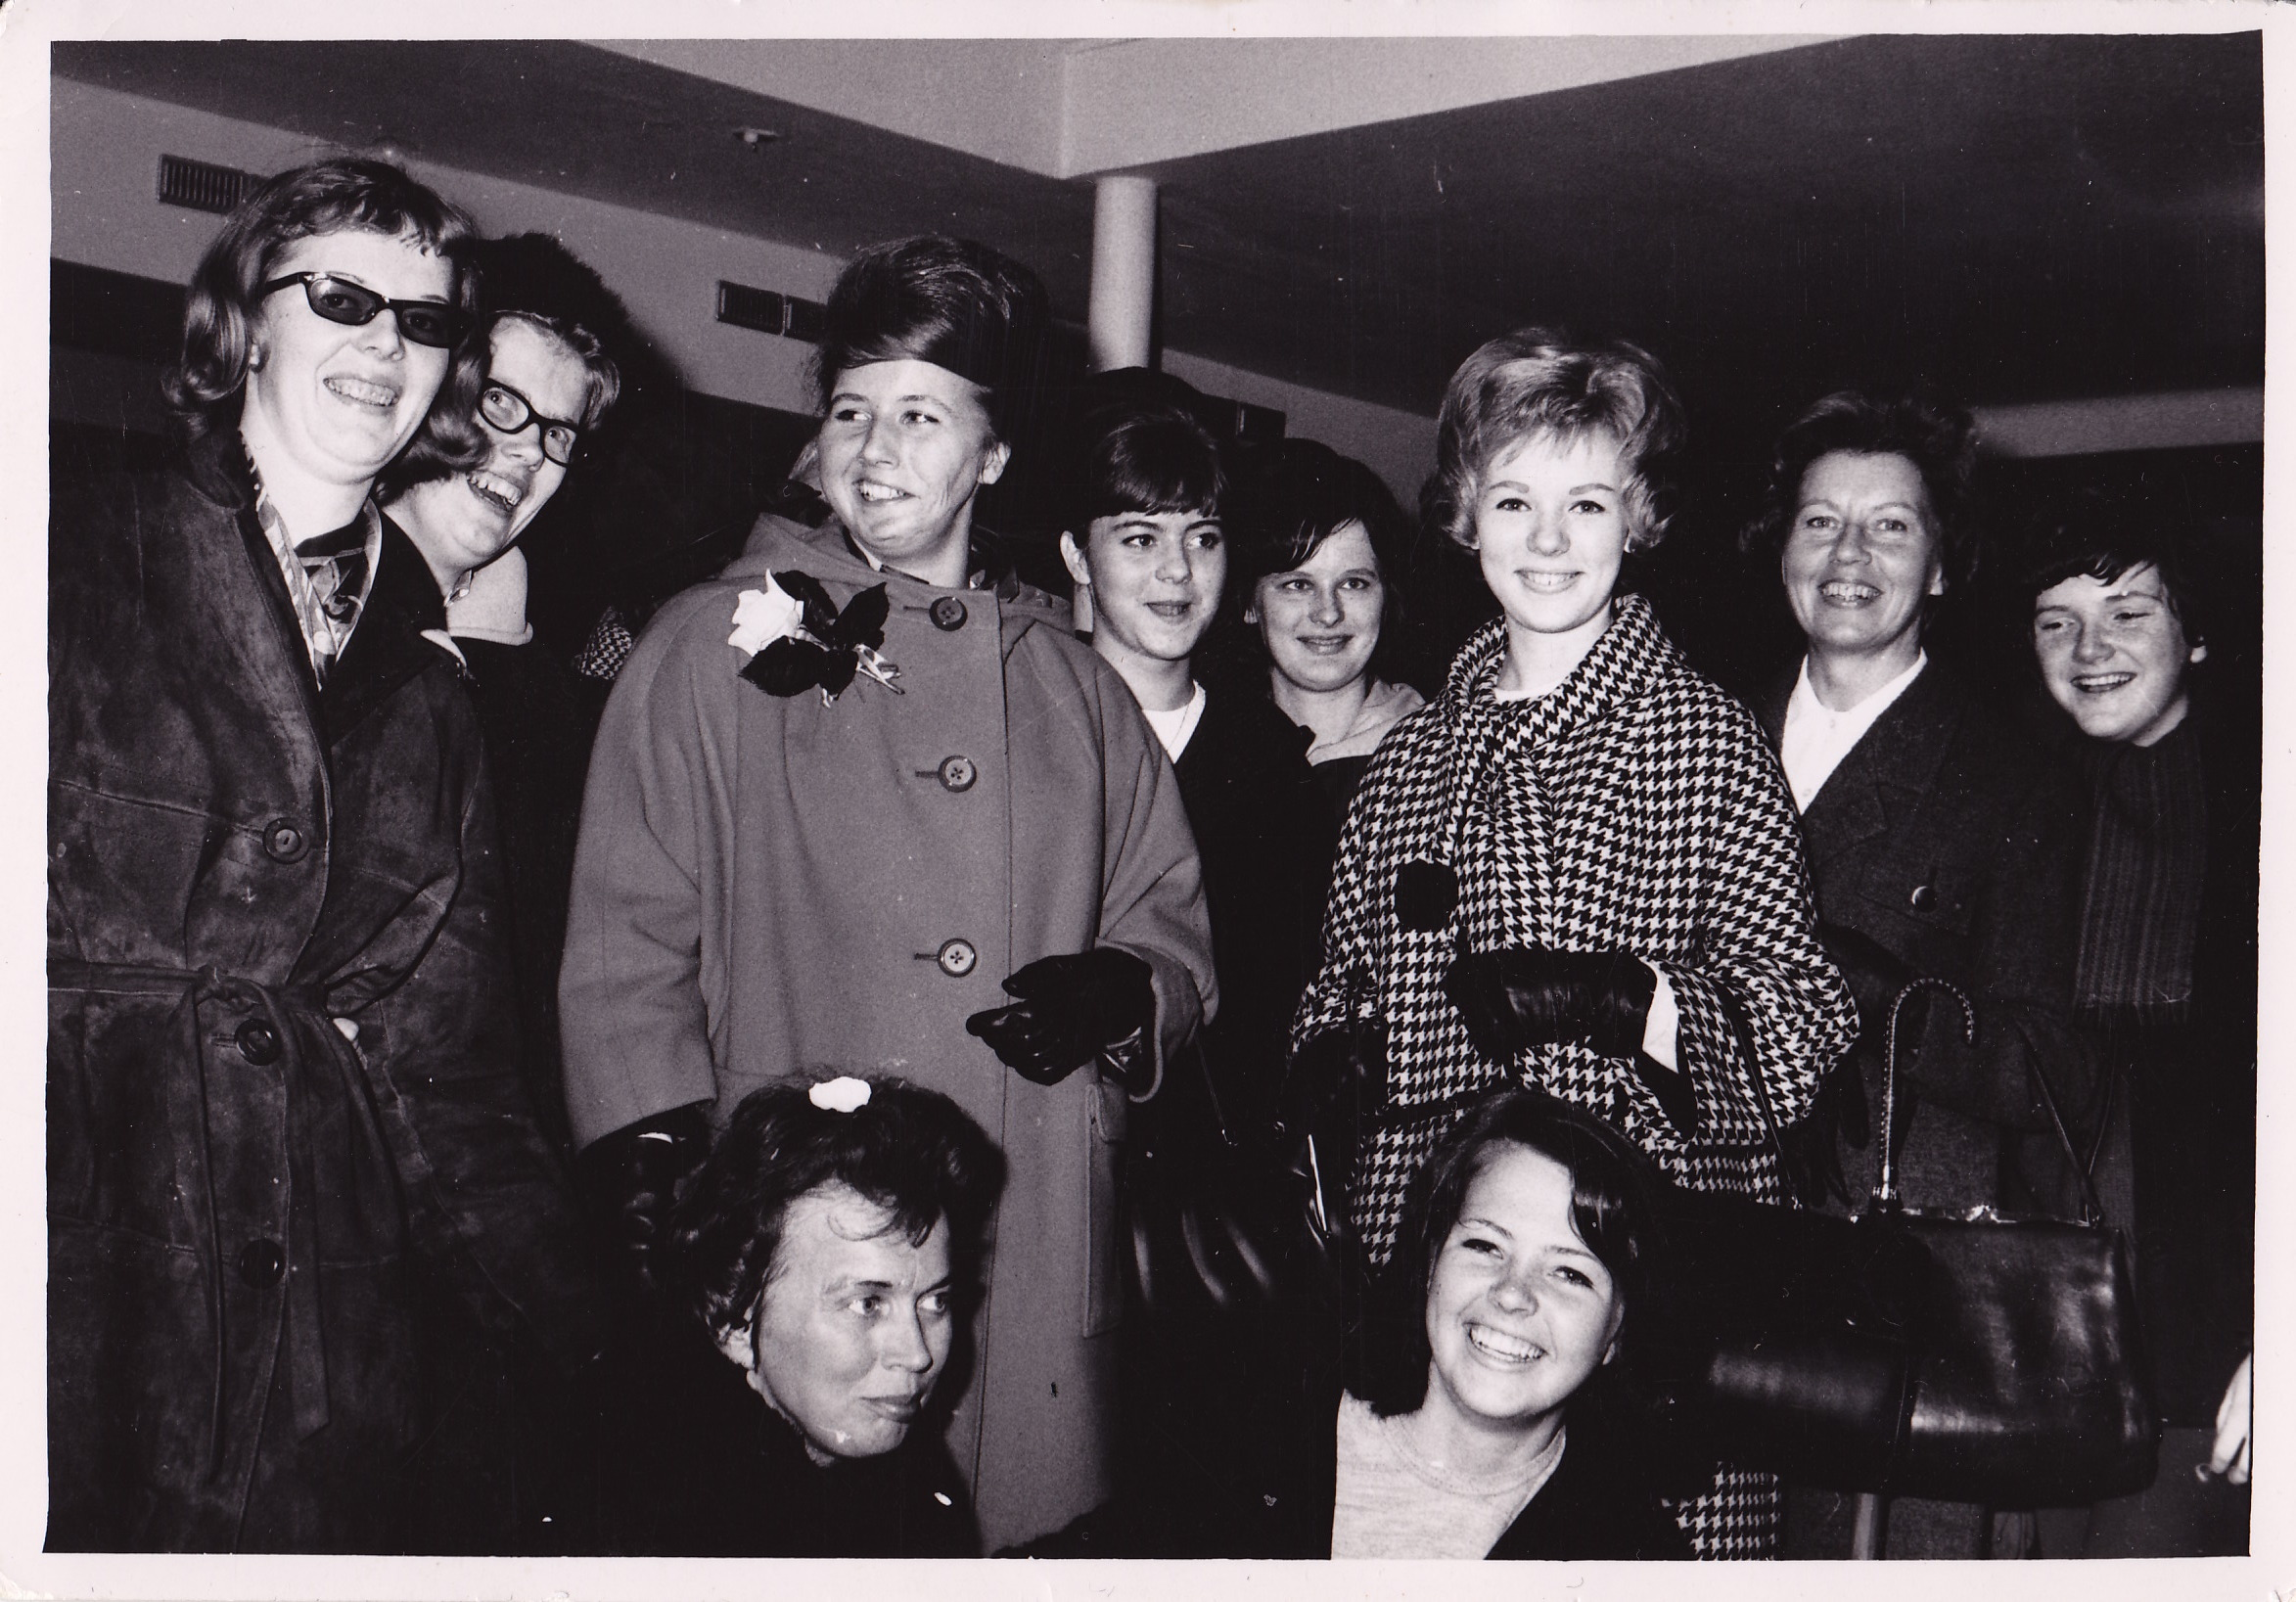 Lisbeth Pettersson, center left, with family and friends at the airport before leaving for America in 1964. Left to right: Lena Lindberg, Gull-brit Bjorklund, Lisbeth Pettersson, Ann-Marie Pettersson, a work friend, Margareta Johansson, Alice Pettersson, and former co-workers.